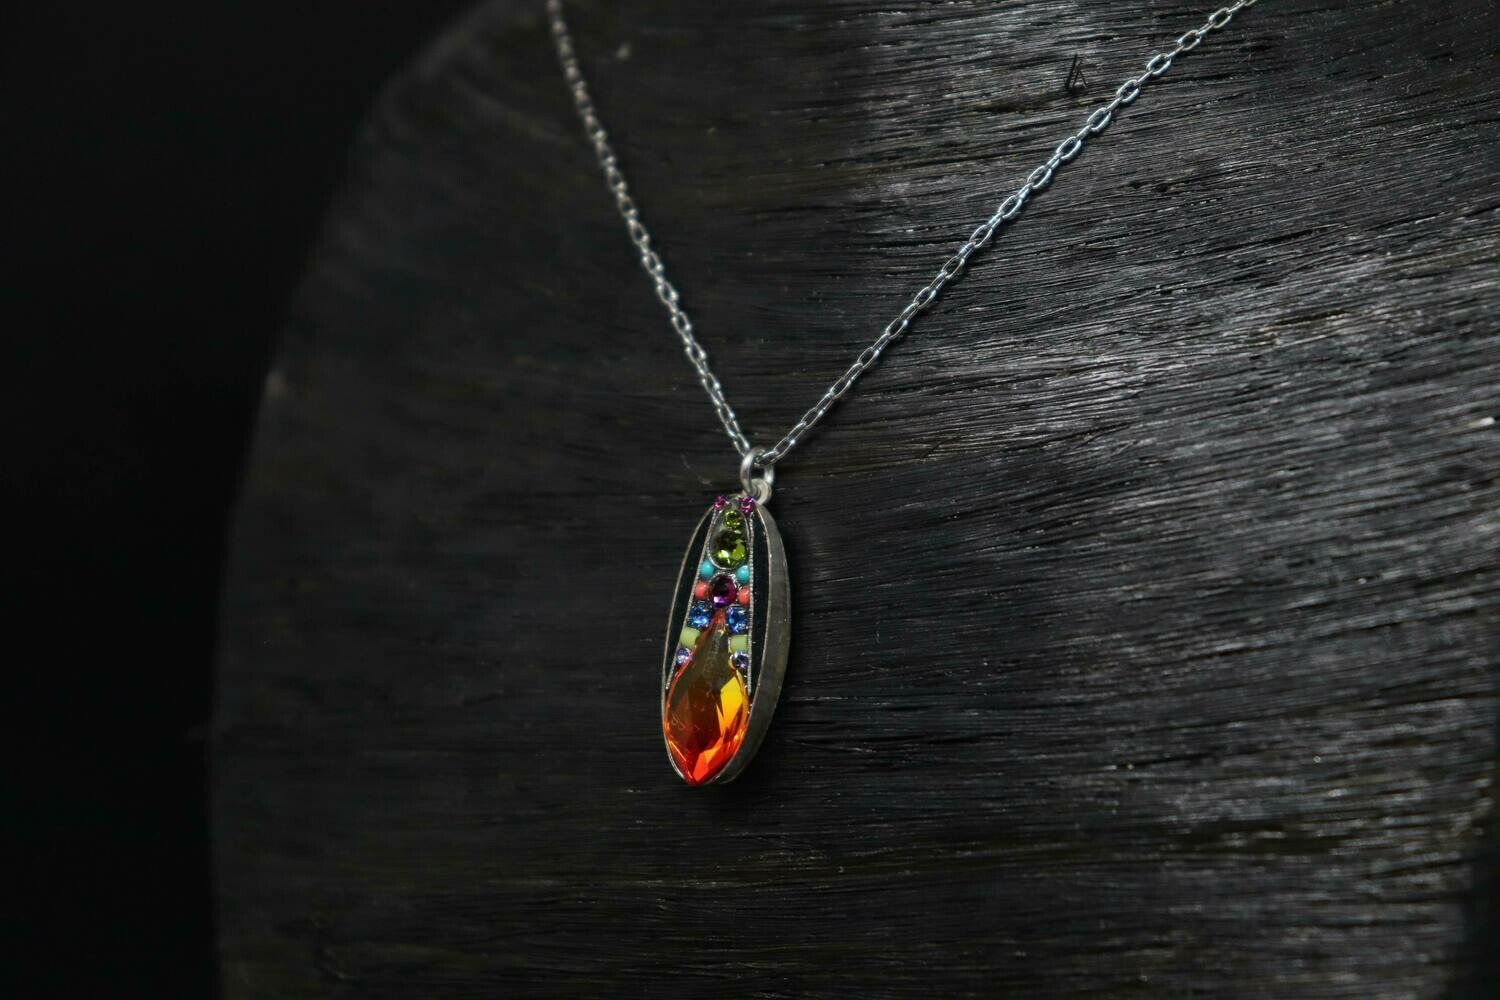 Orange Firefly Necklace